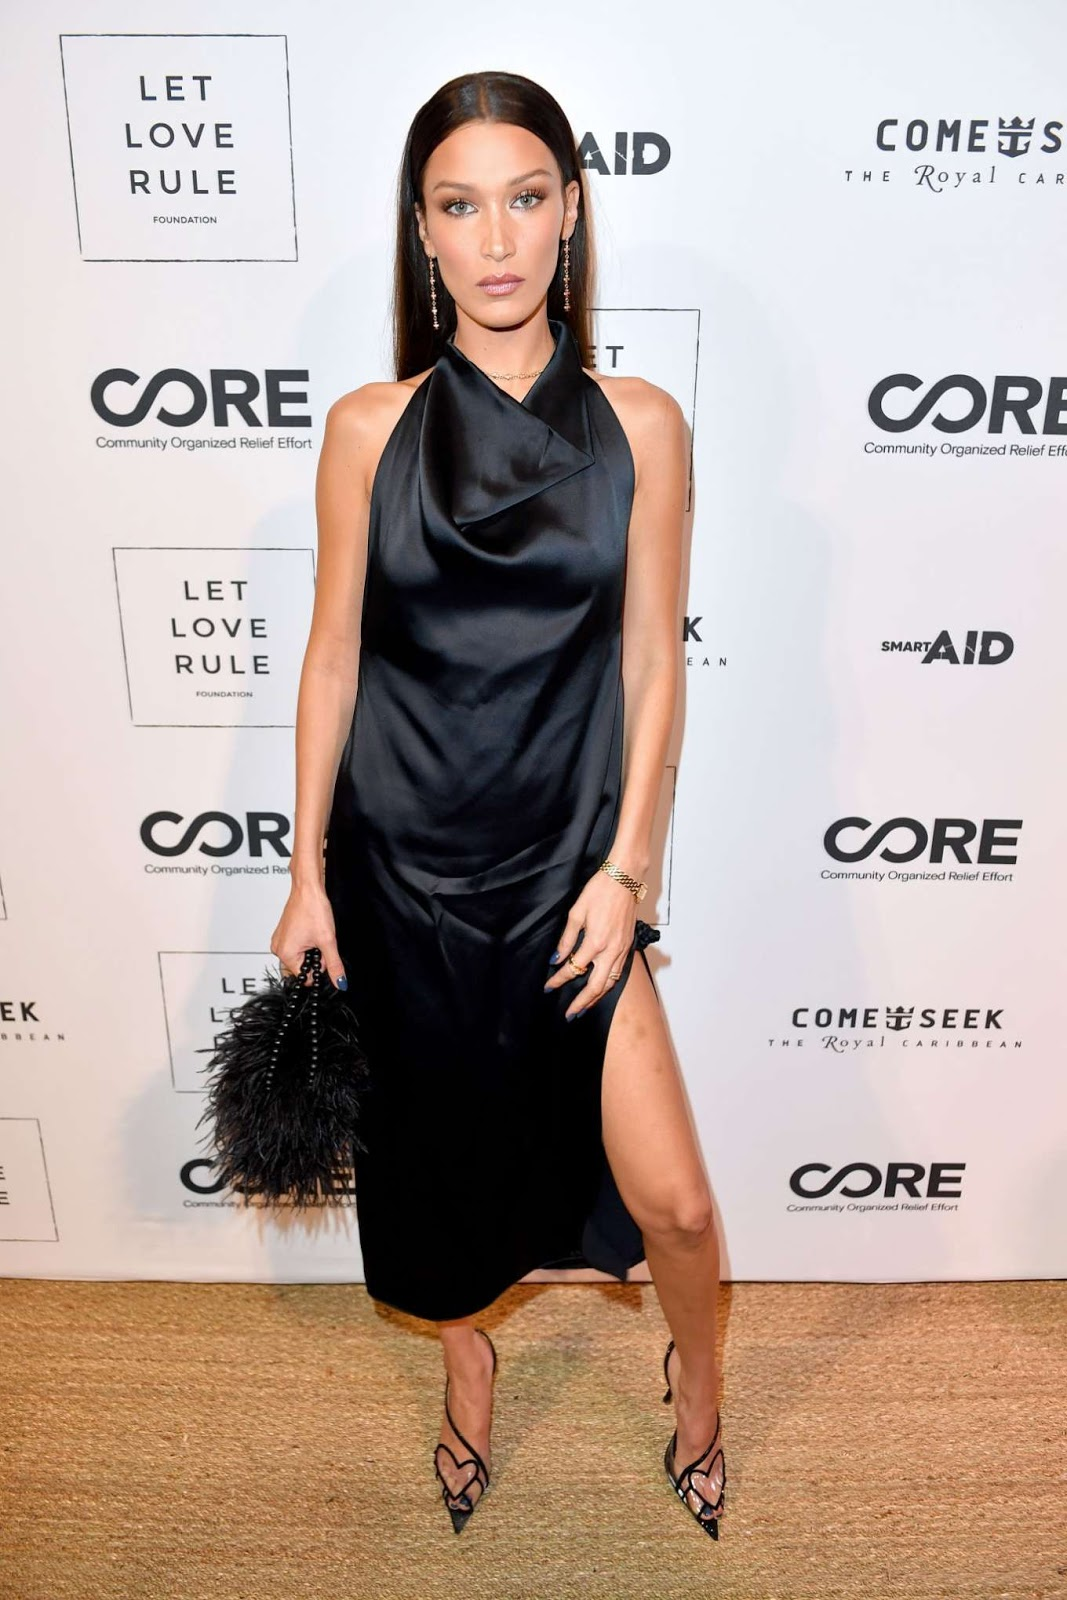 Bella Hadid is braless and backless for the Core x Let Love Rule Benefit during Miami Art Basel